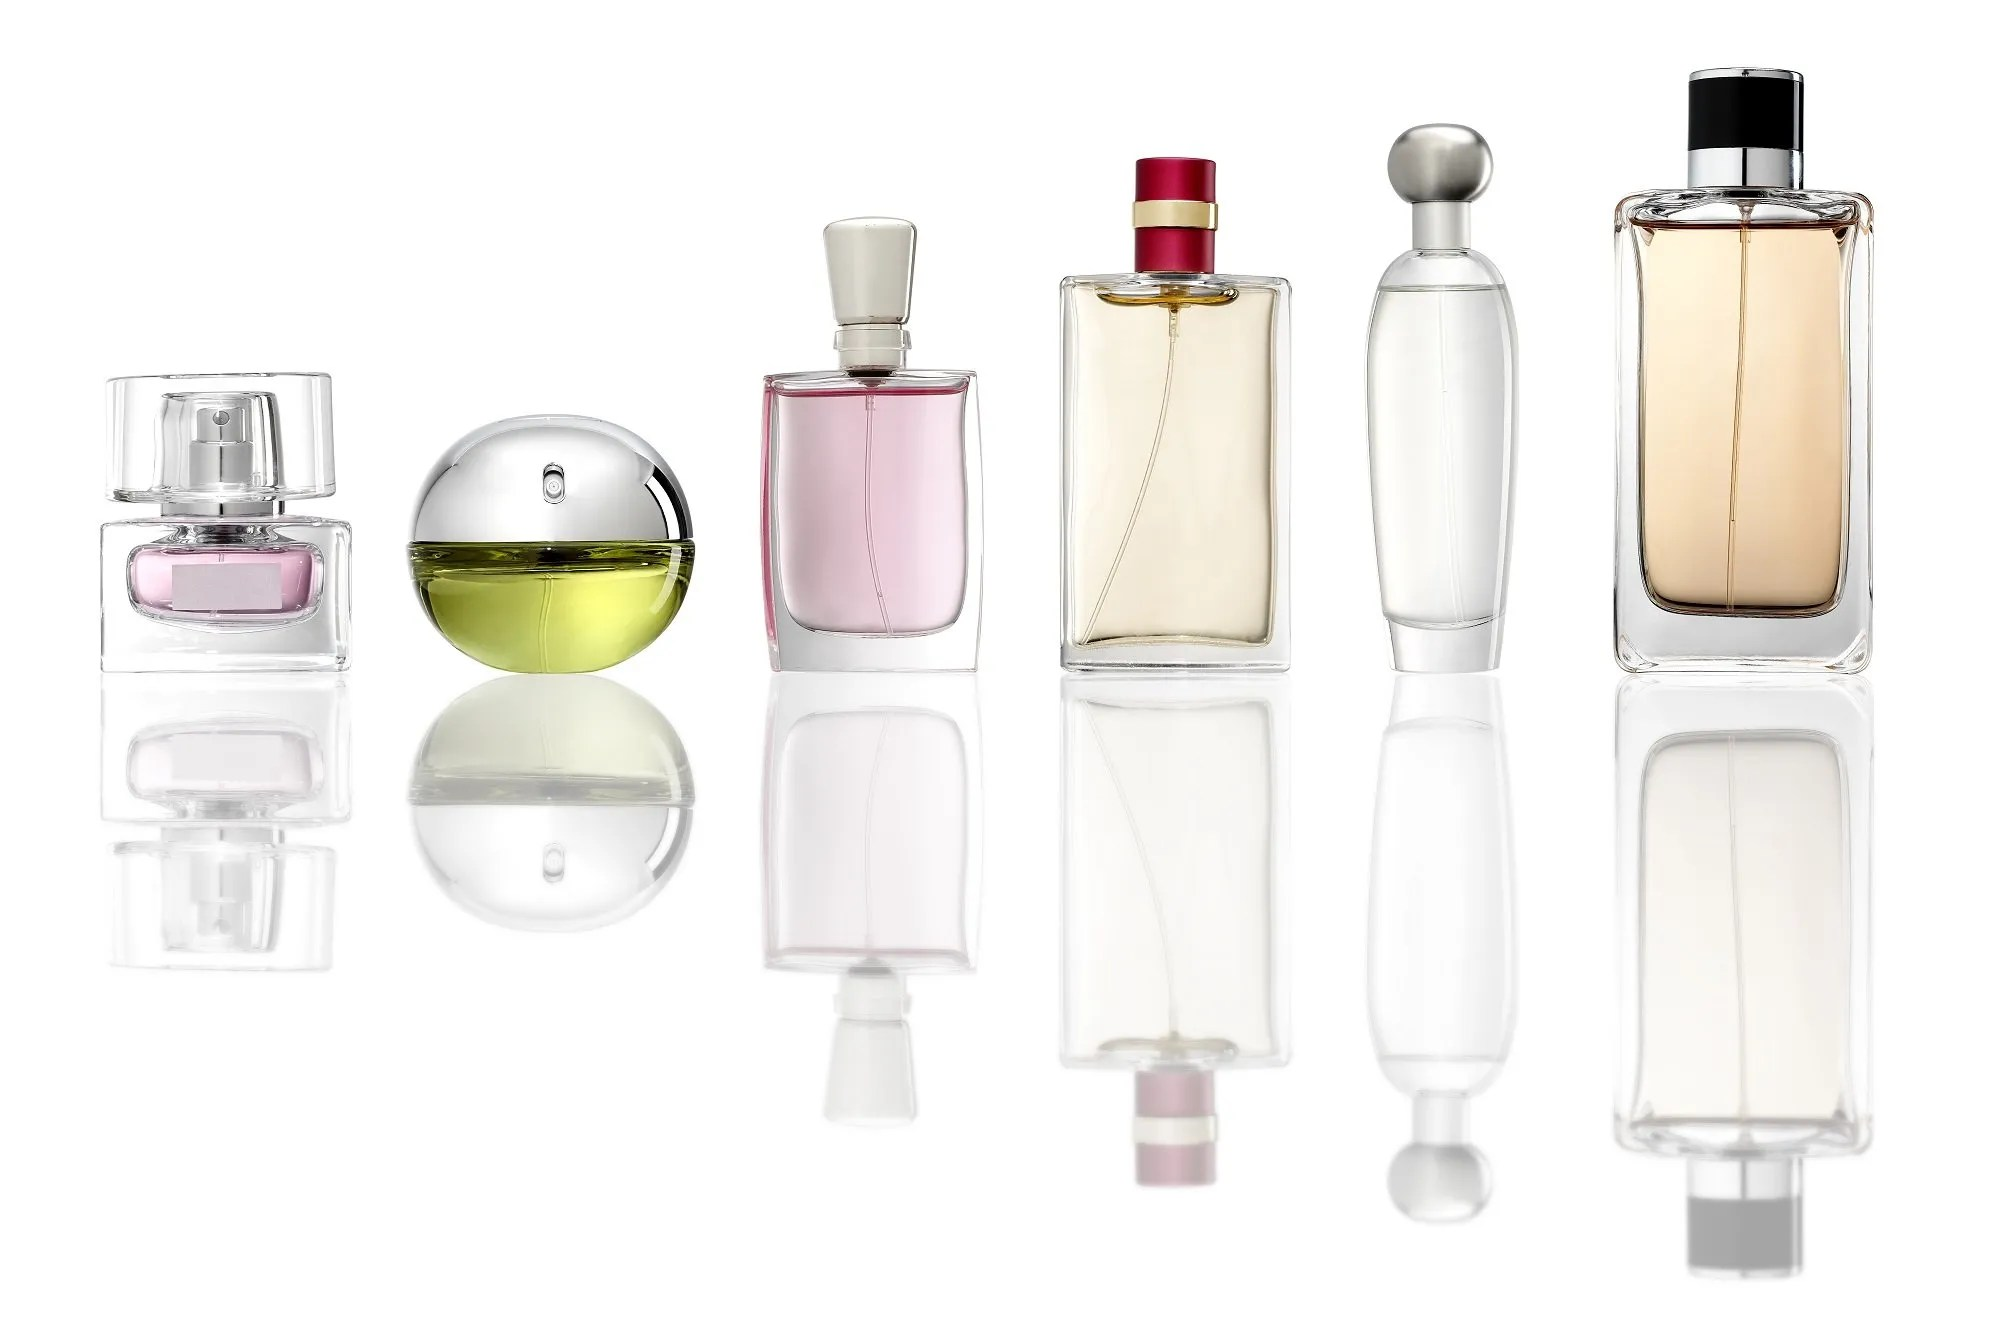 Innovation and extended supply chain: Perfumery and